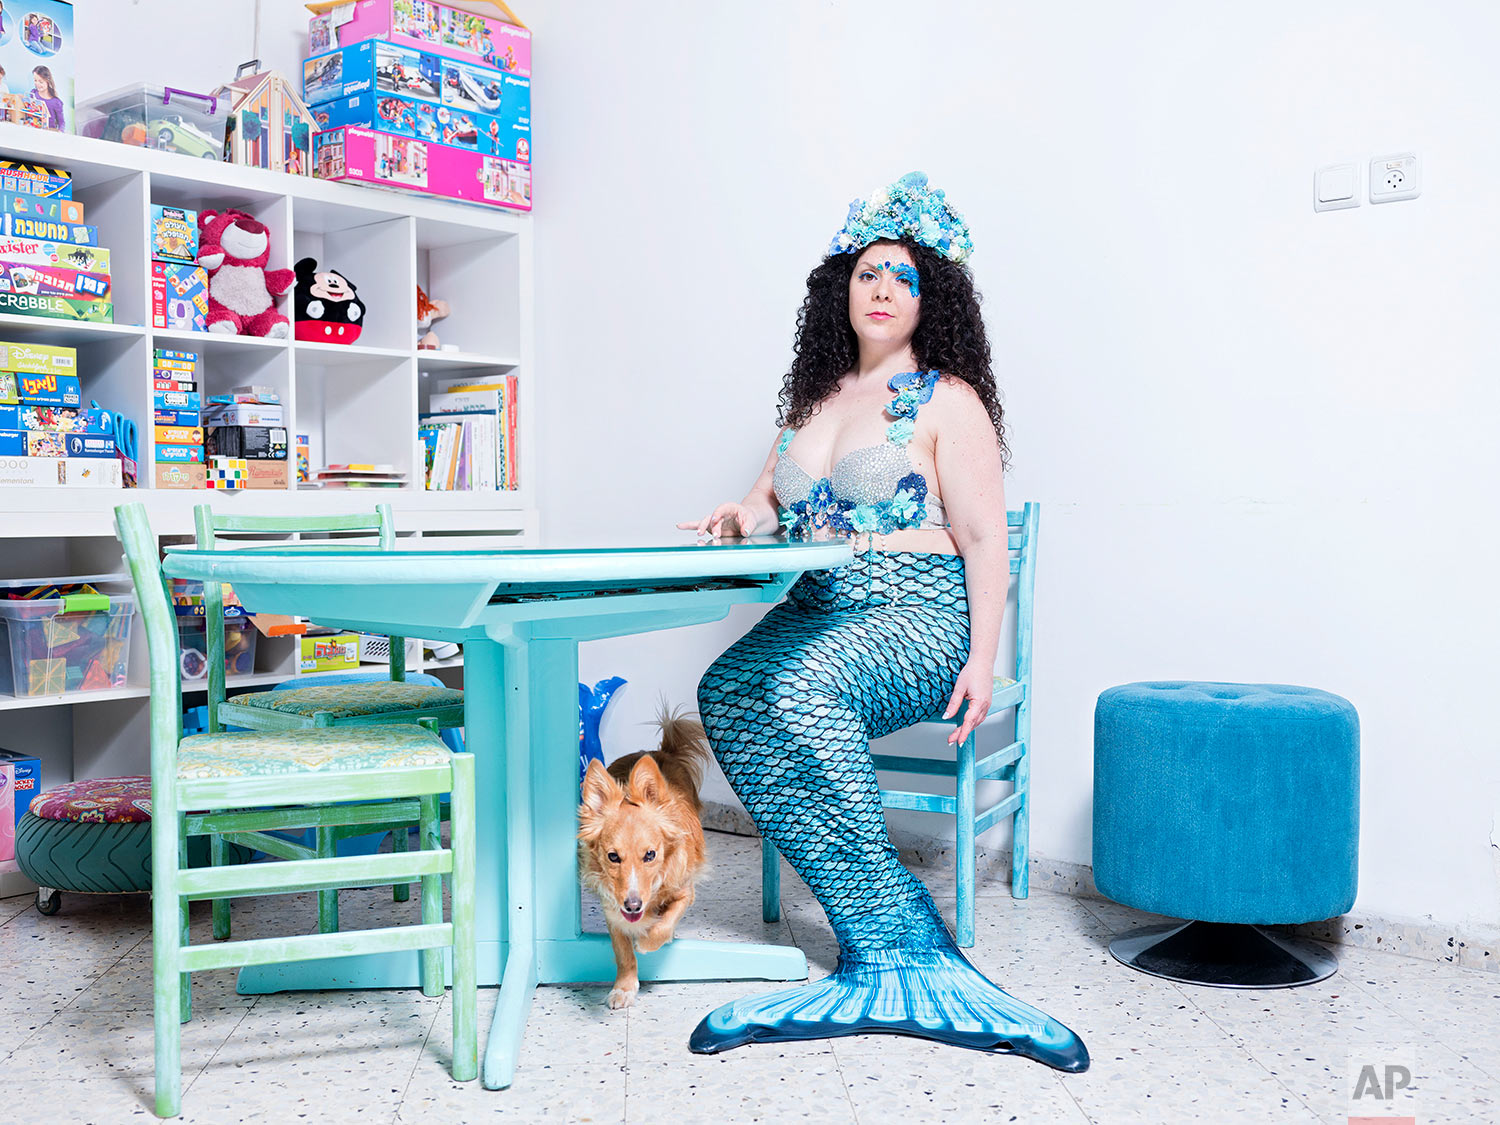 In this Monday, March. 4, 2019 photo, Inbar Ben Yakar, a member of the Israeli Mermaid Community, poses for a portrait as she wears a mermaid tail at her home in Kiryat Yam, Israel. (AP Photo/Oded Balilty)